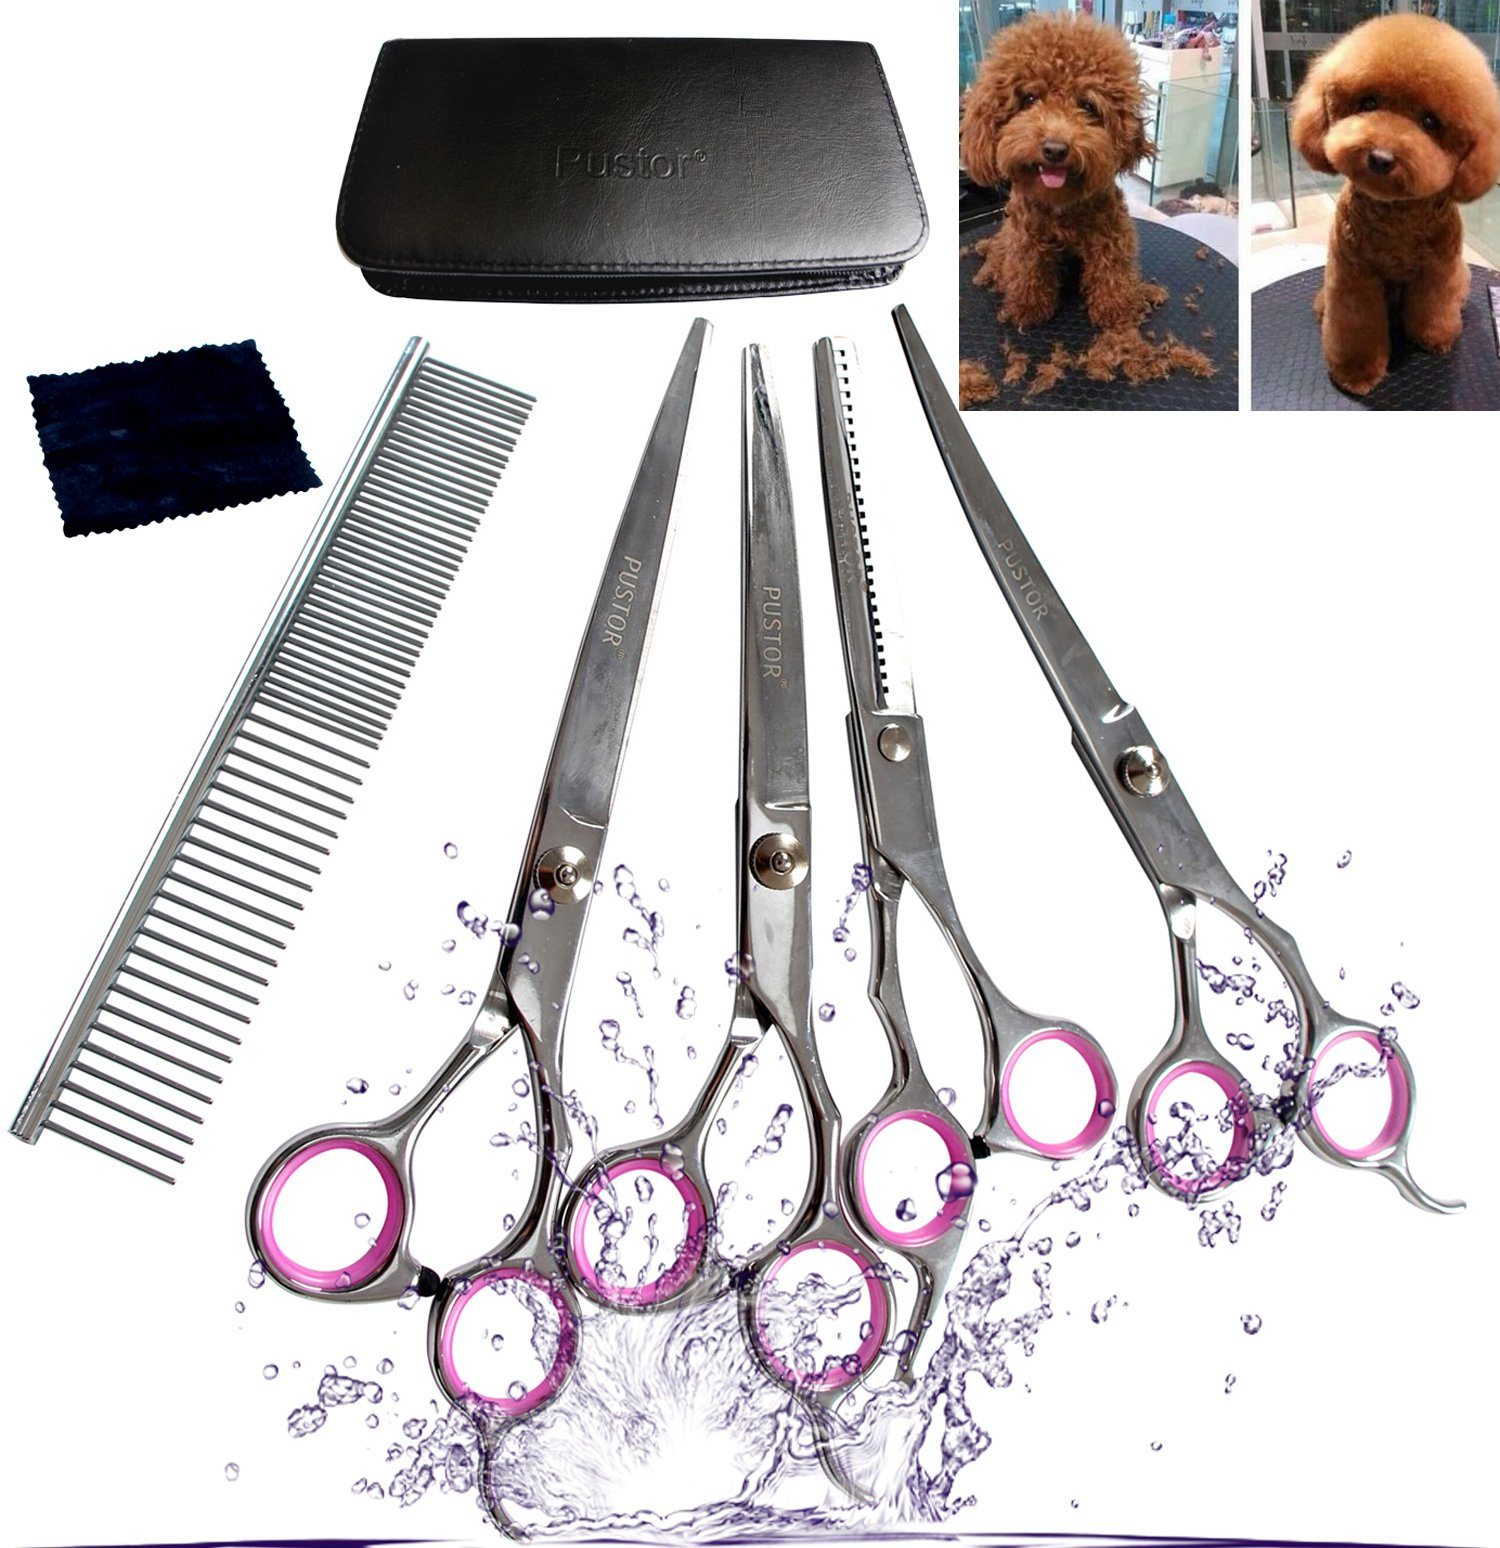 Pustor Dog Shears Stainless Steel Grooming Scissor kit Curved hair Professional Pet scissors and comb for Thinning,7.0 Inches